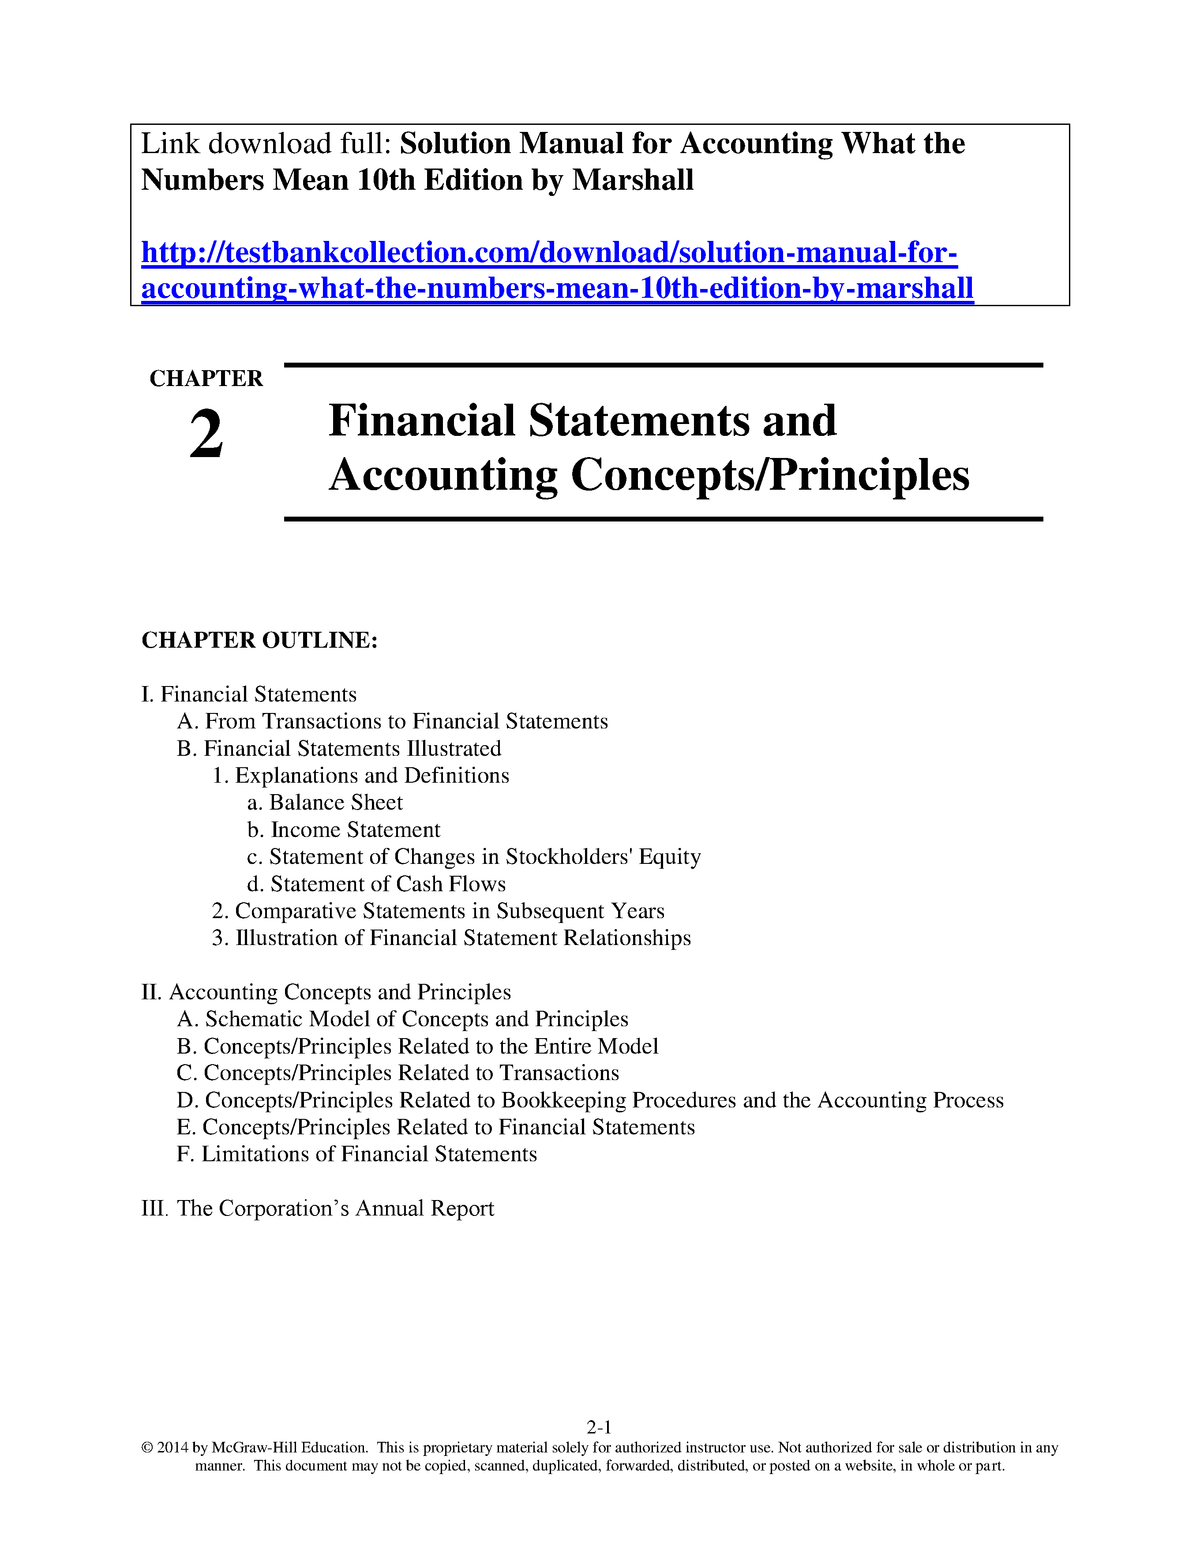 Solution Manual for Accounting What the Numbers Mean 10th